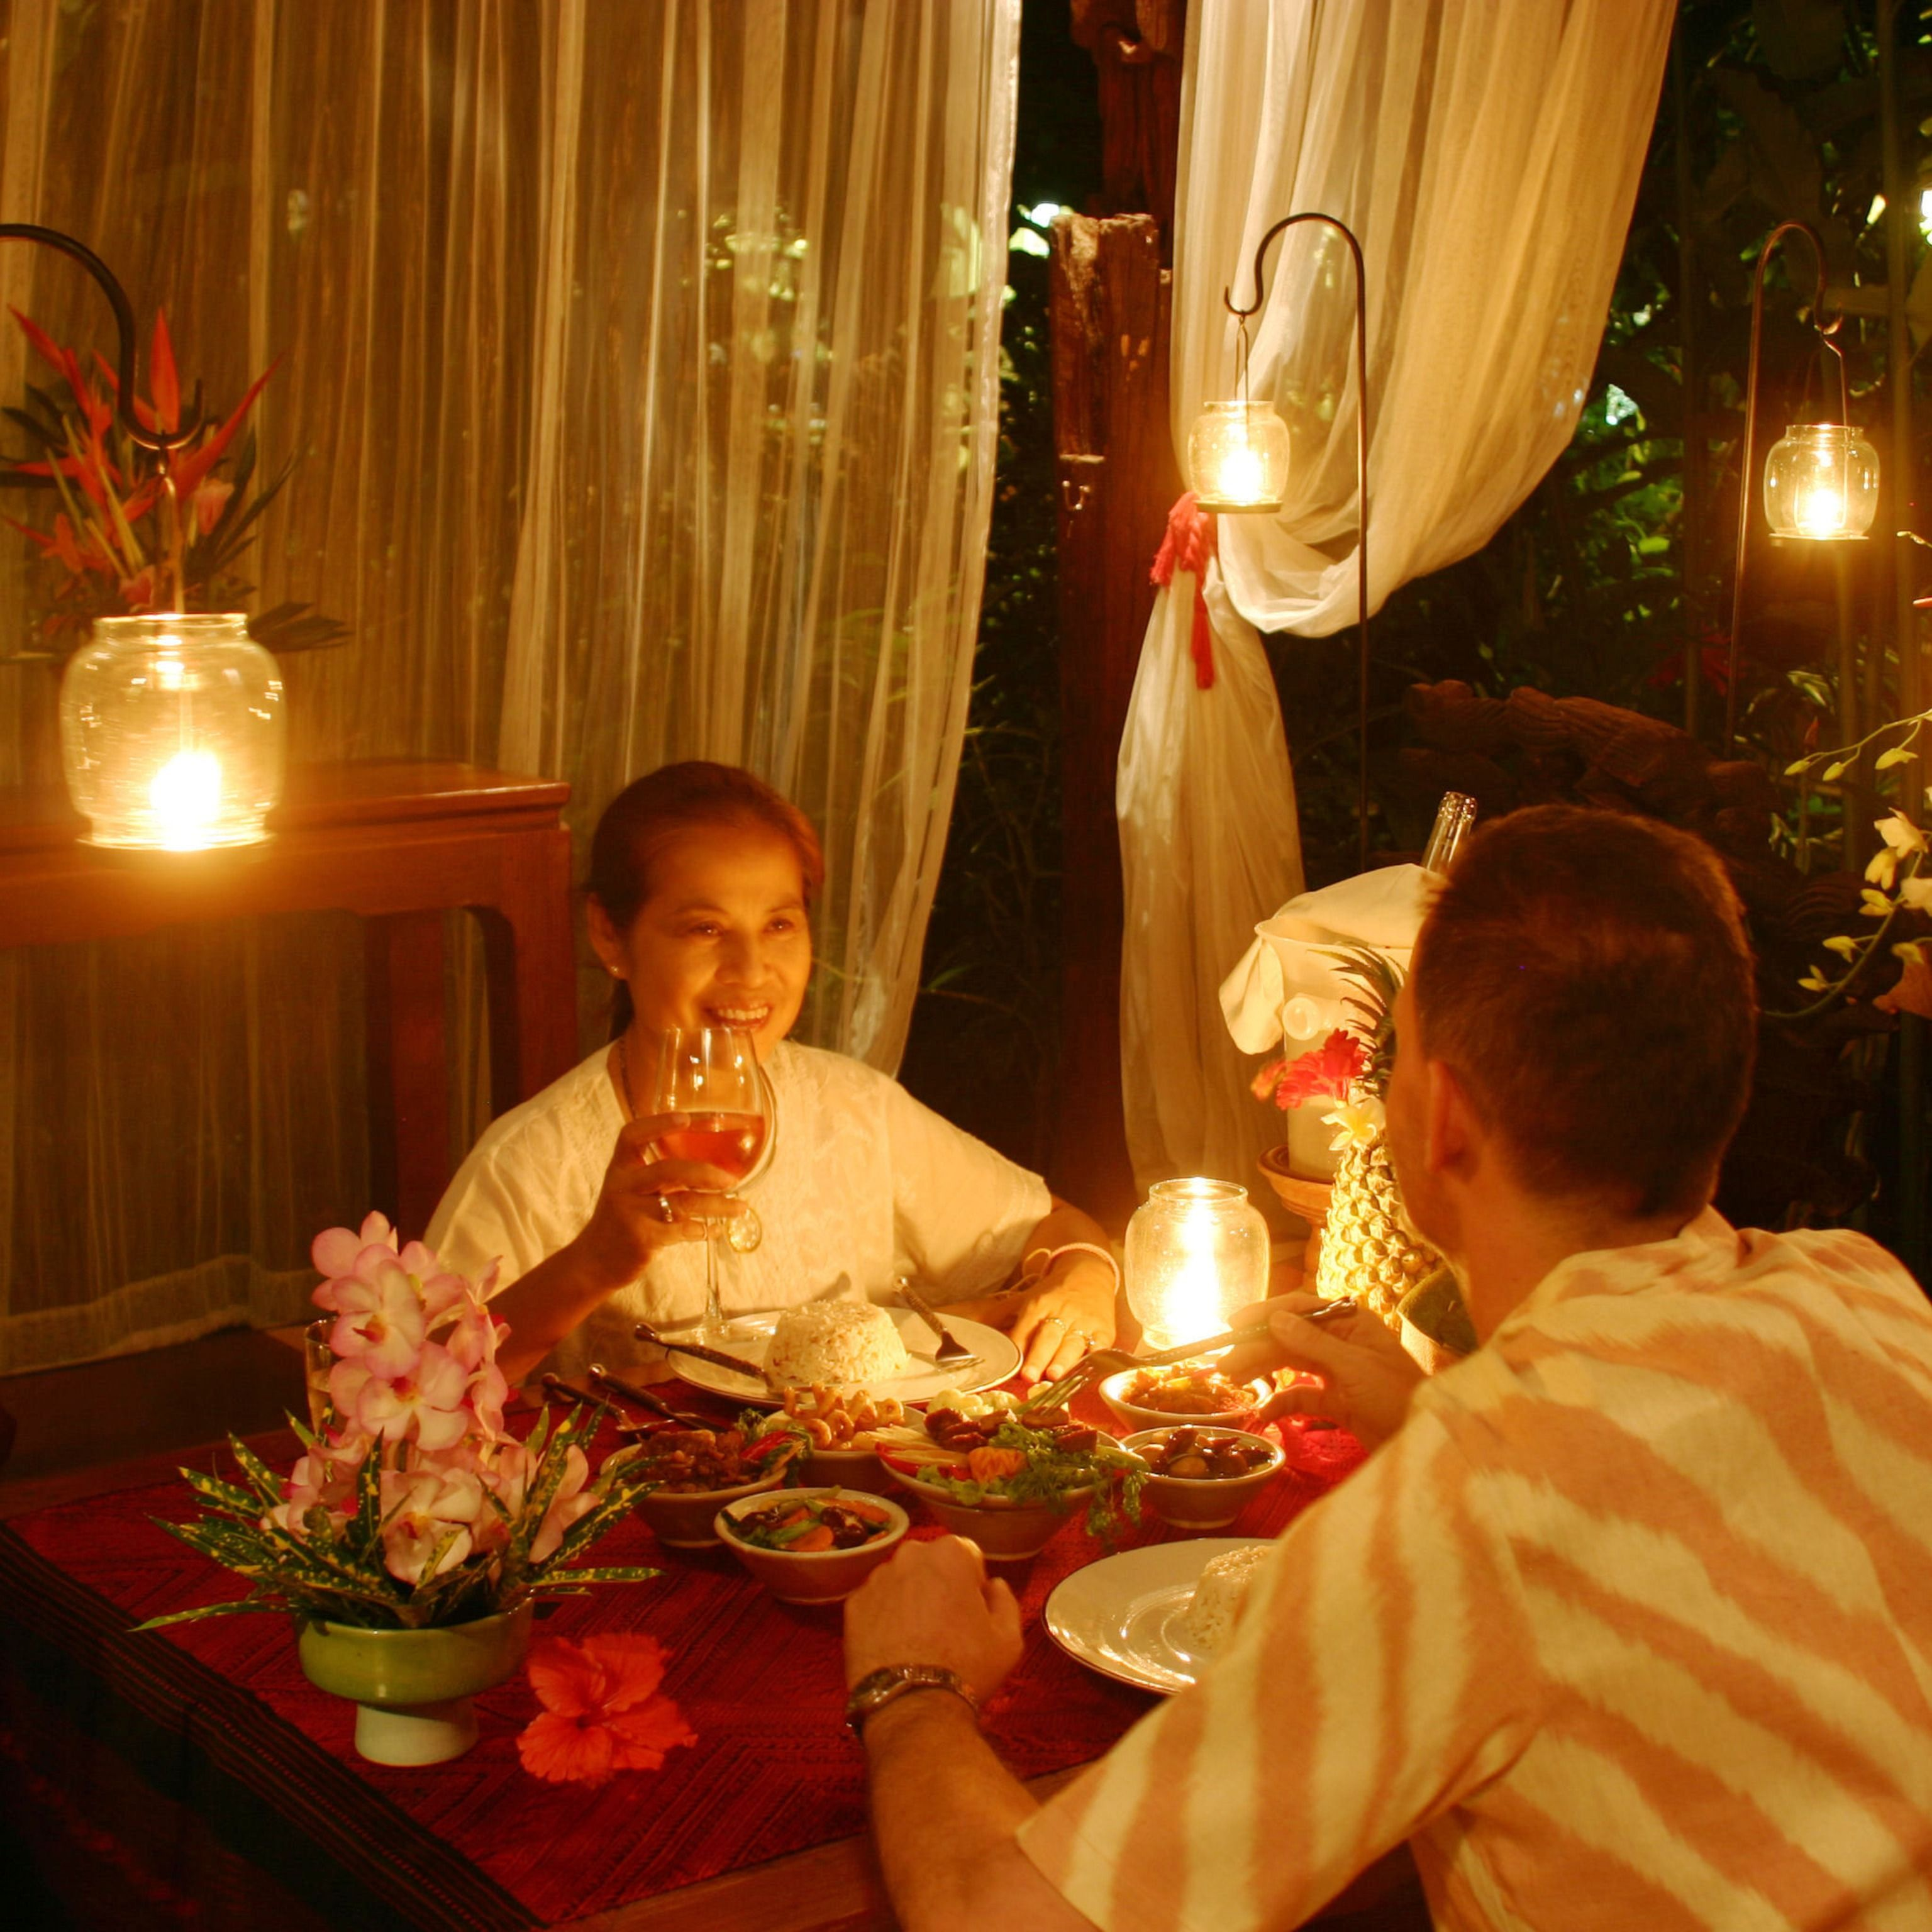 Romantic candle light dinner at the garden pavilion